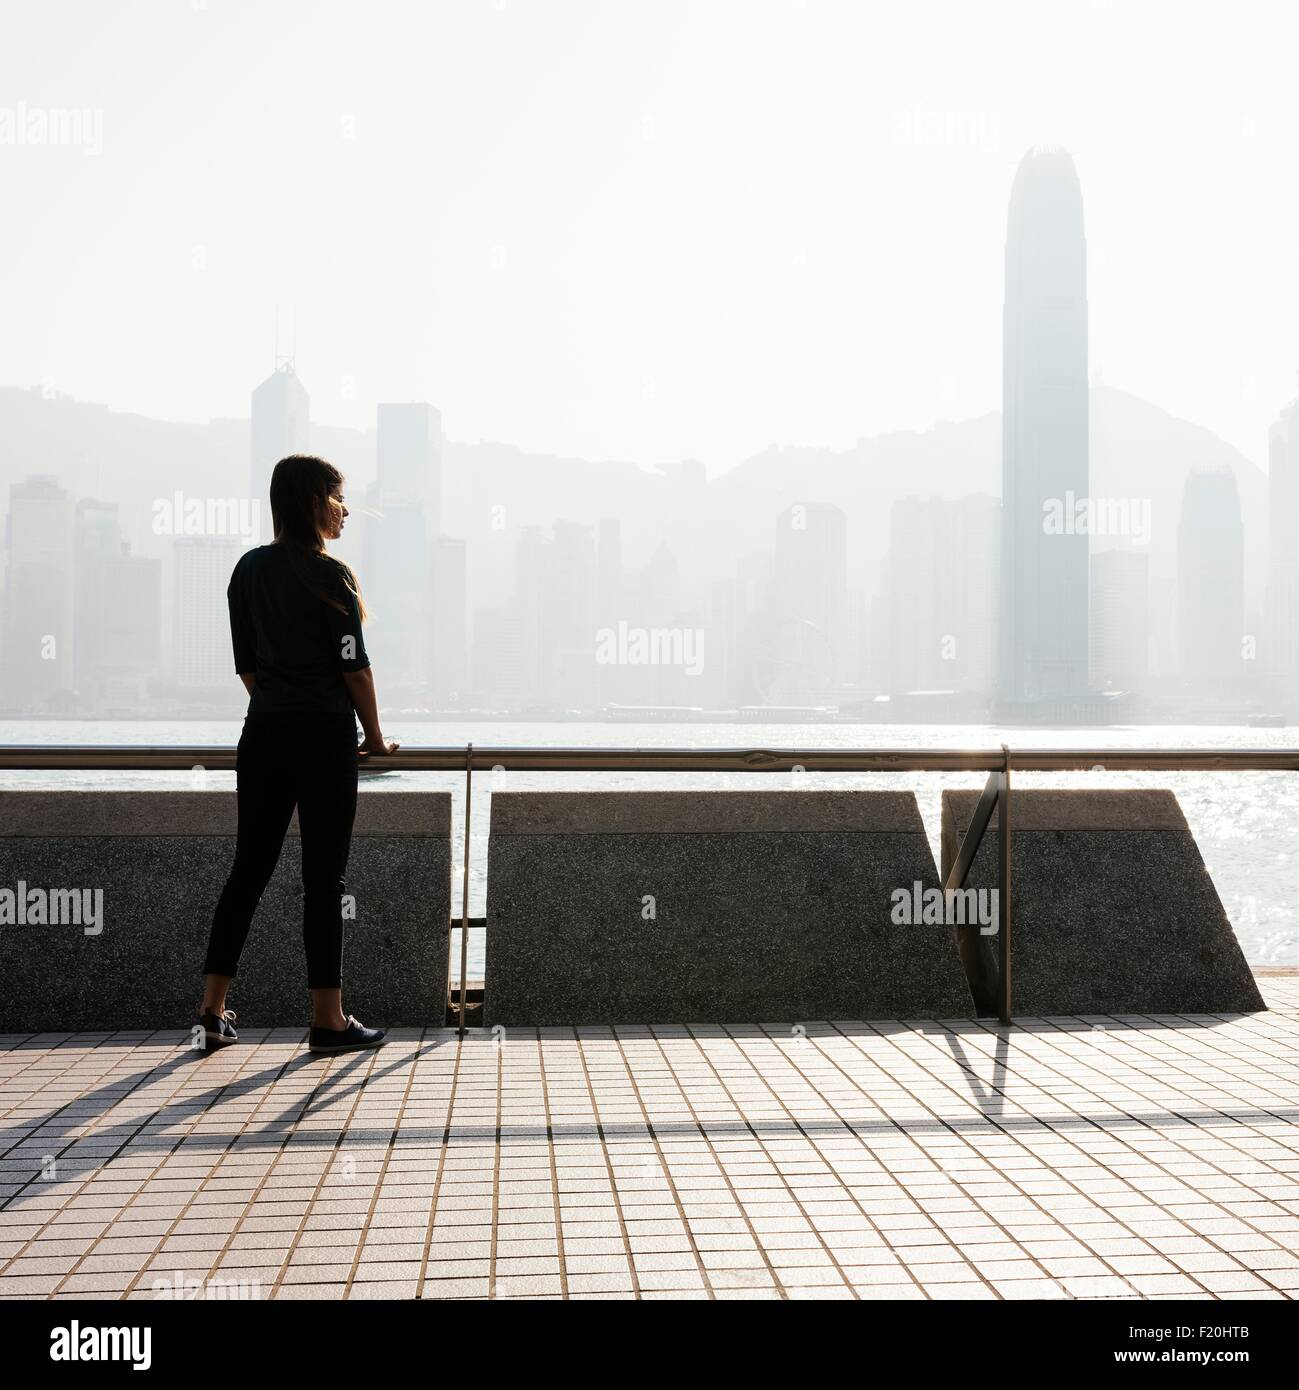 Silhouetted side view of young woman standing looking out over water at skyline, Hong Kong, China - Stock Image